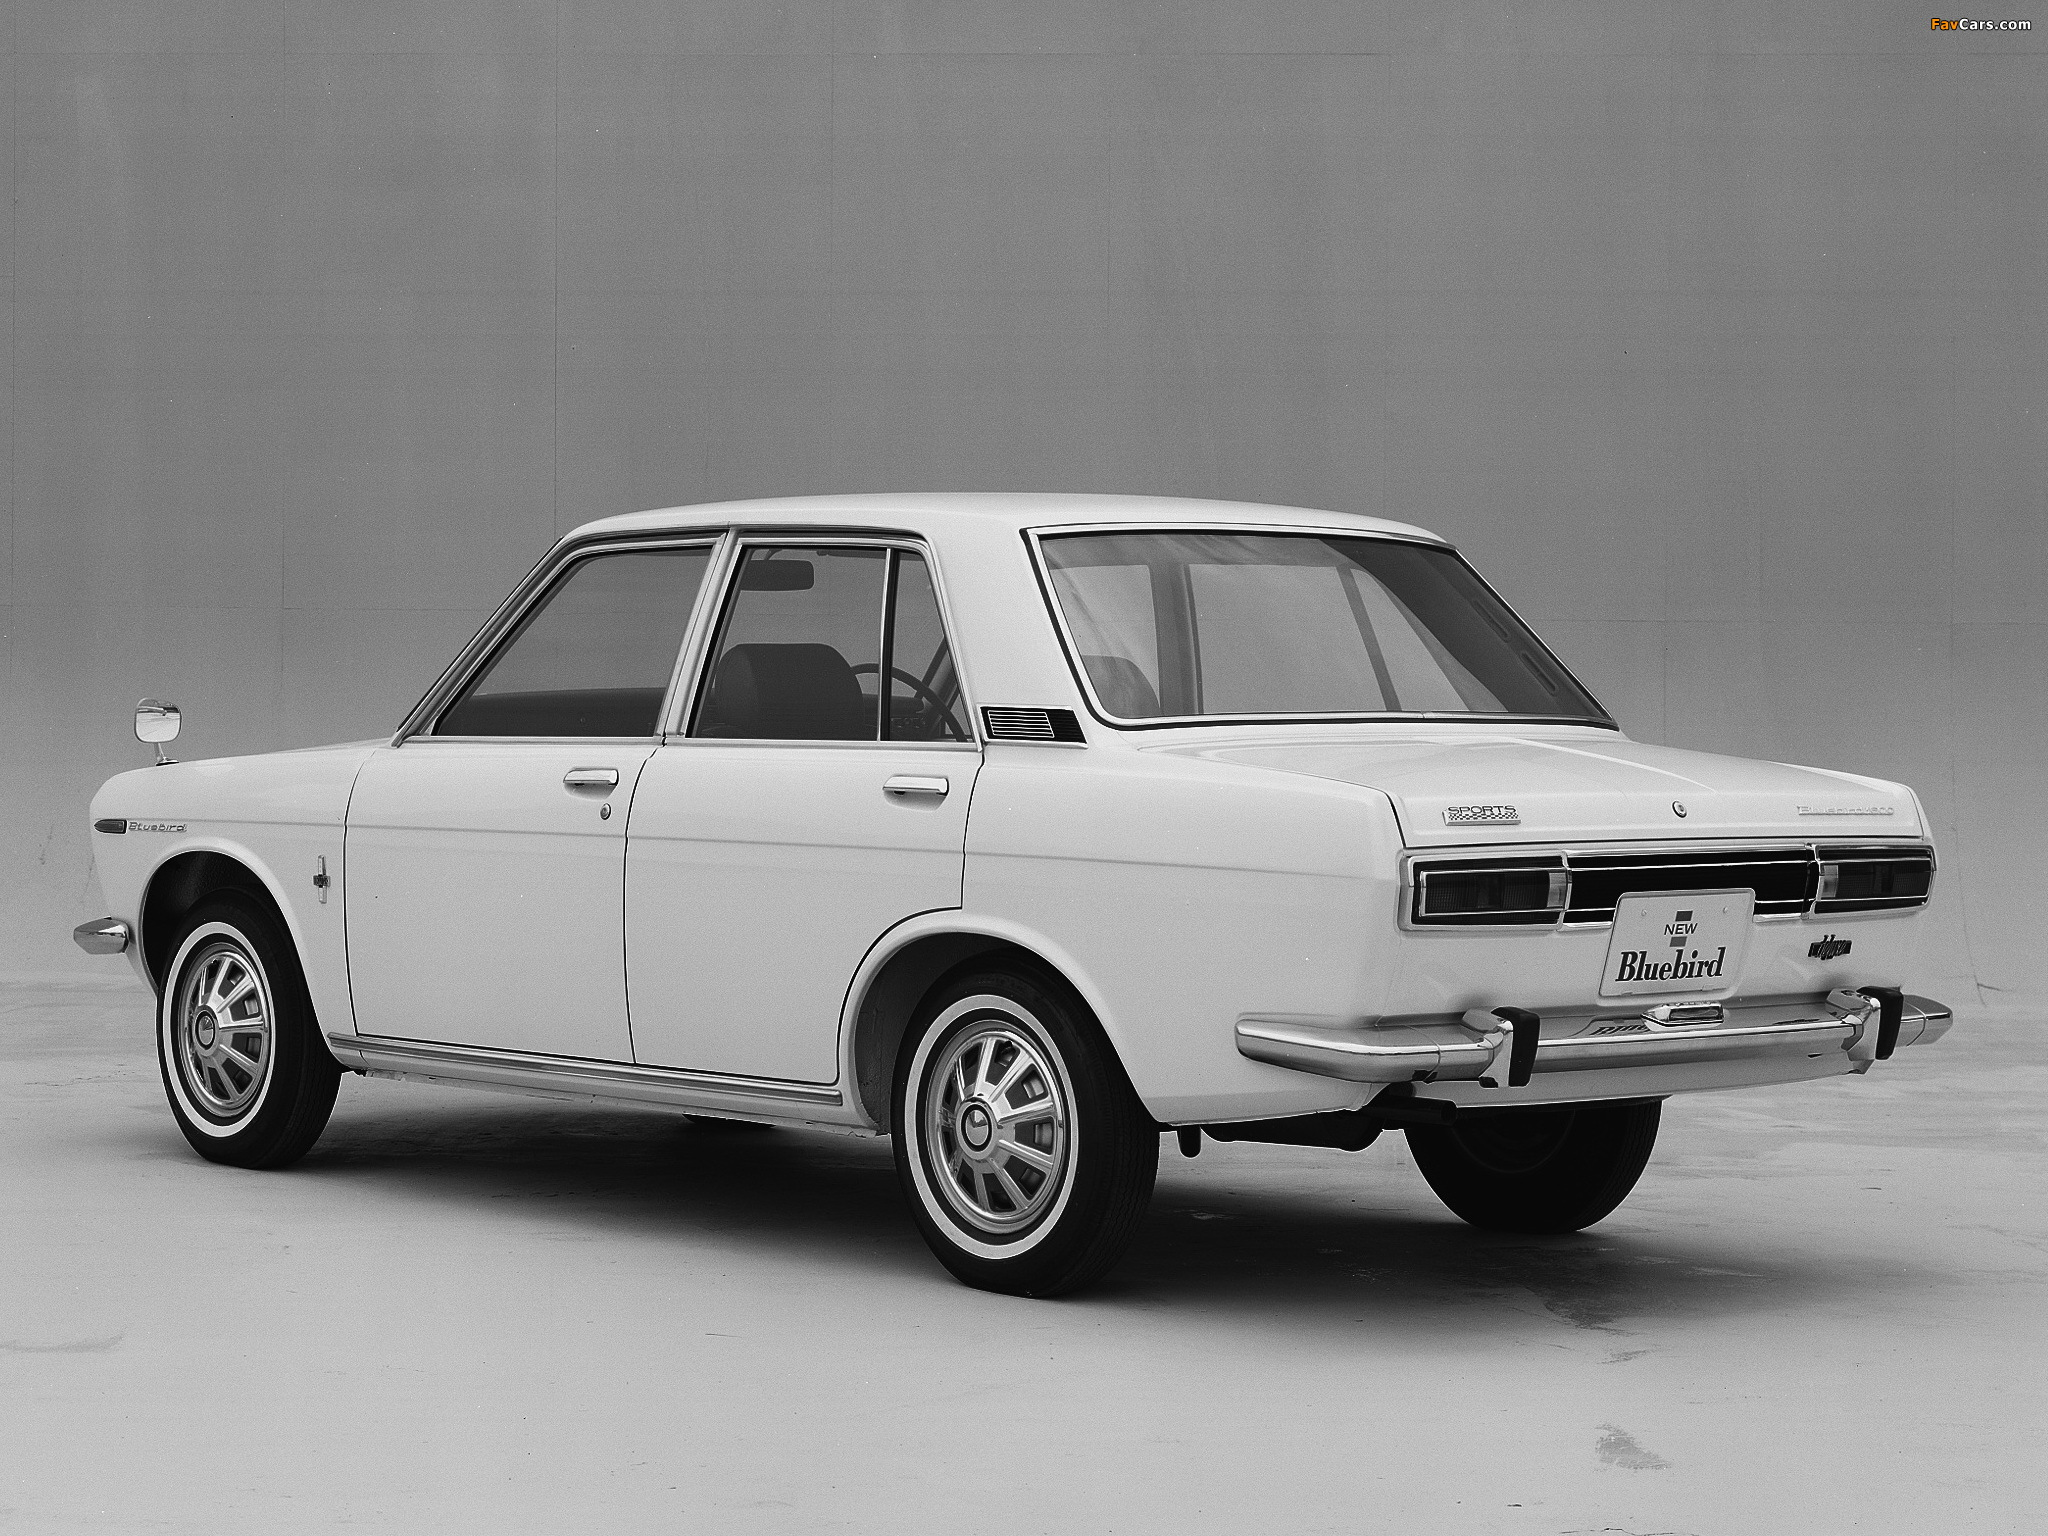 Wallpapers of Datsun Bluebird 4 door Sedan 510 196772 2048x1536